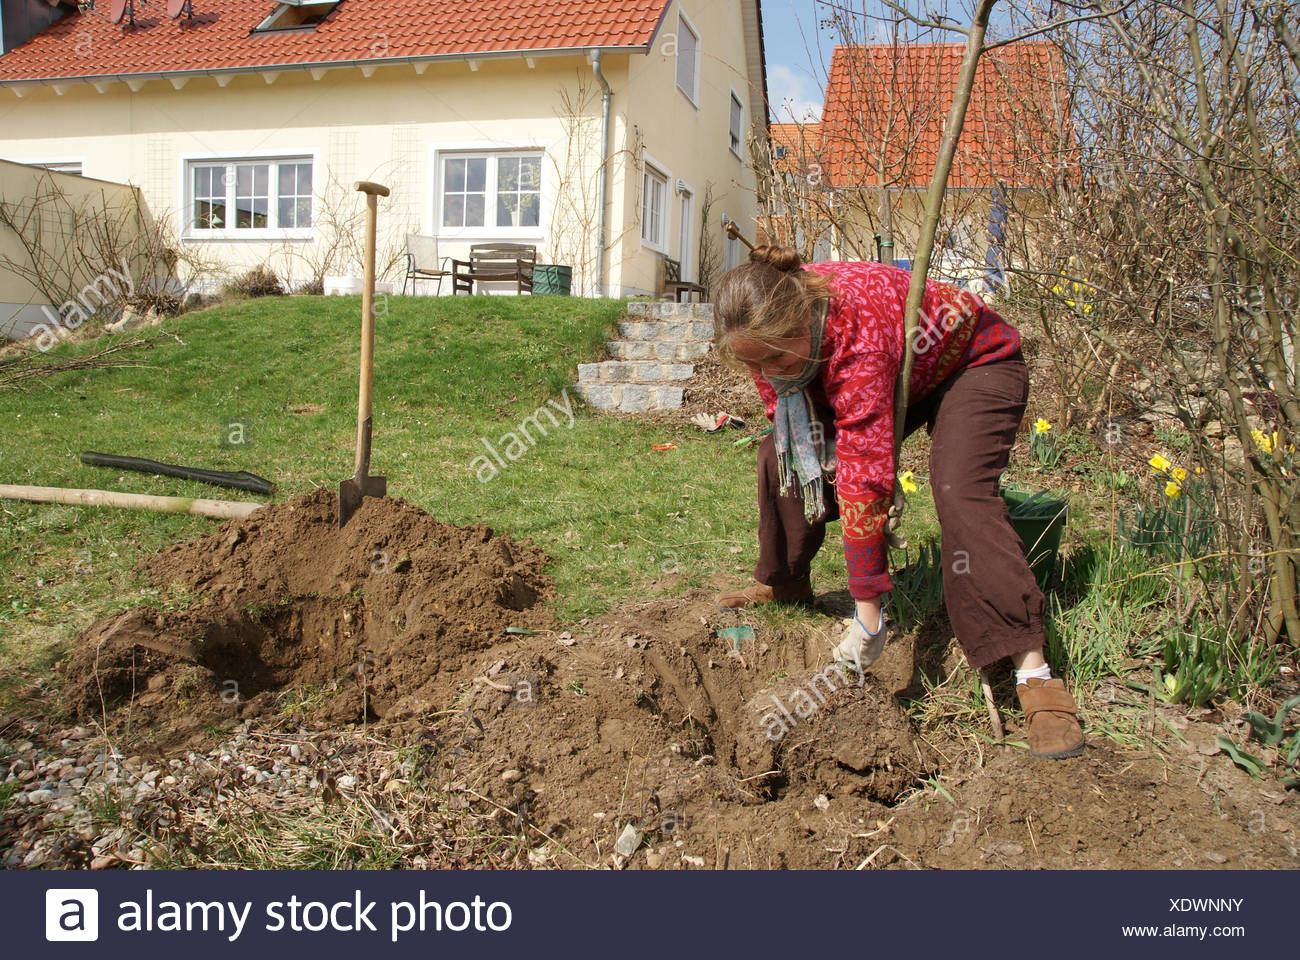 Planting a tree with root bale - Stock Image